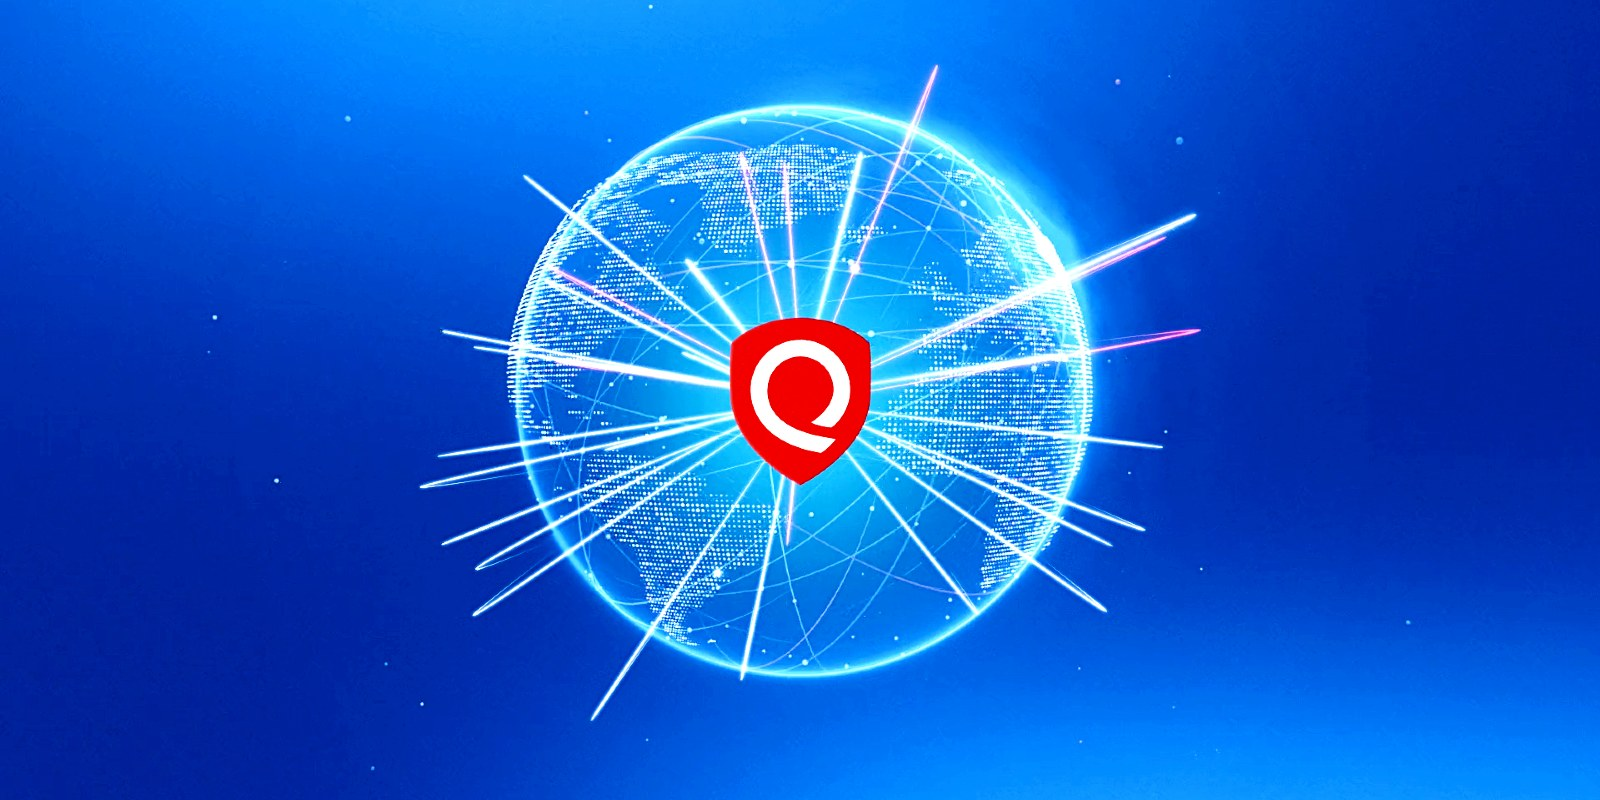 Qualys says Accellion hackers did not breach production systems